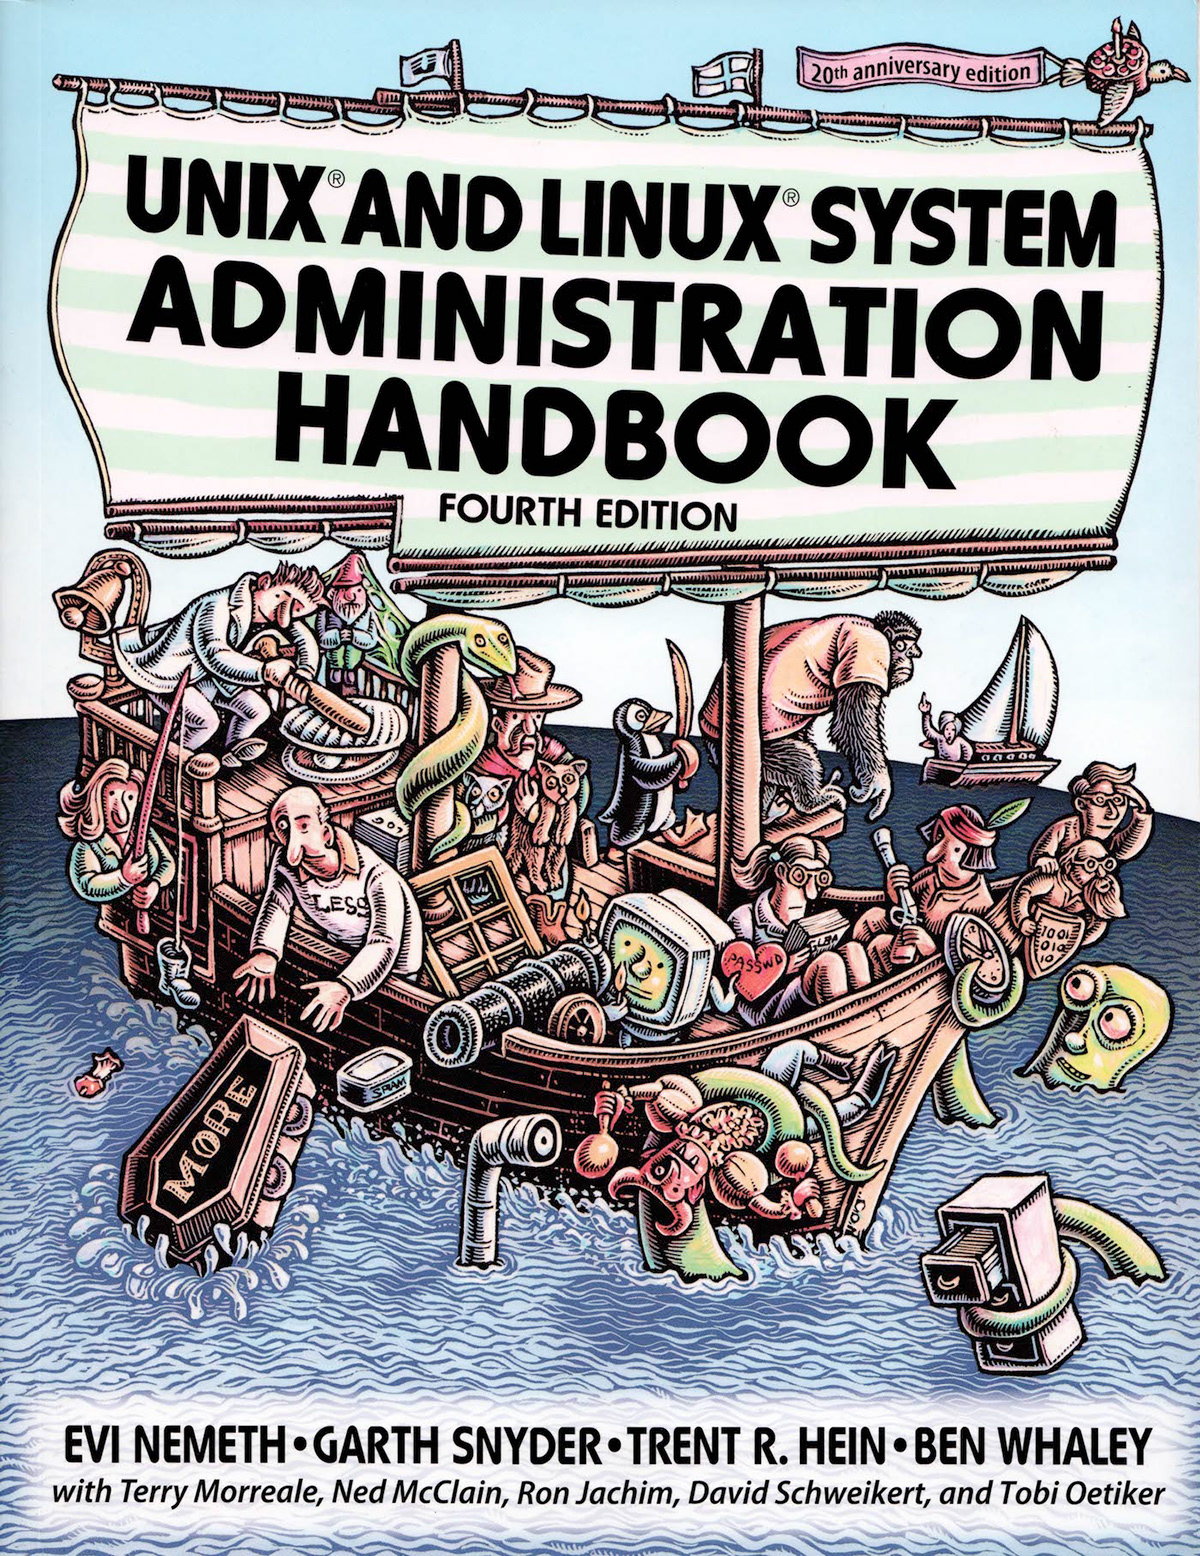 Book: UNIX and Linux System Administration Handbook